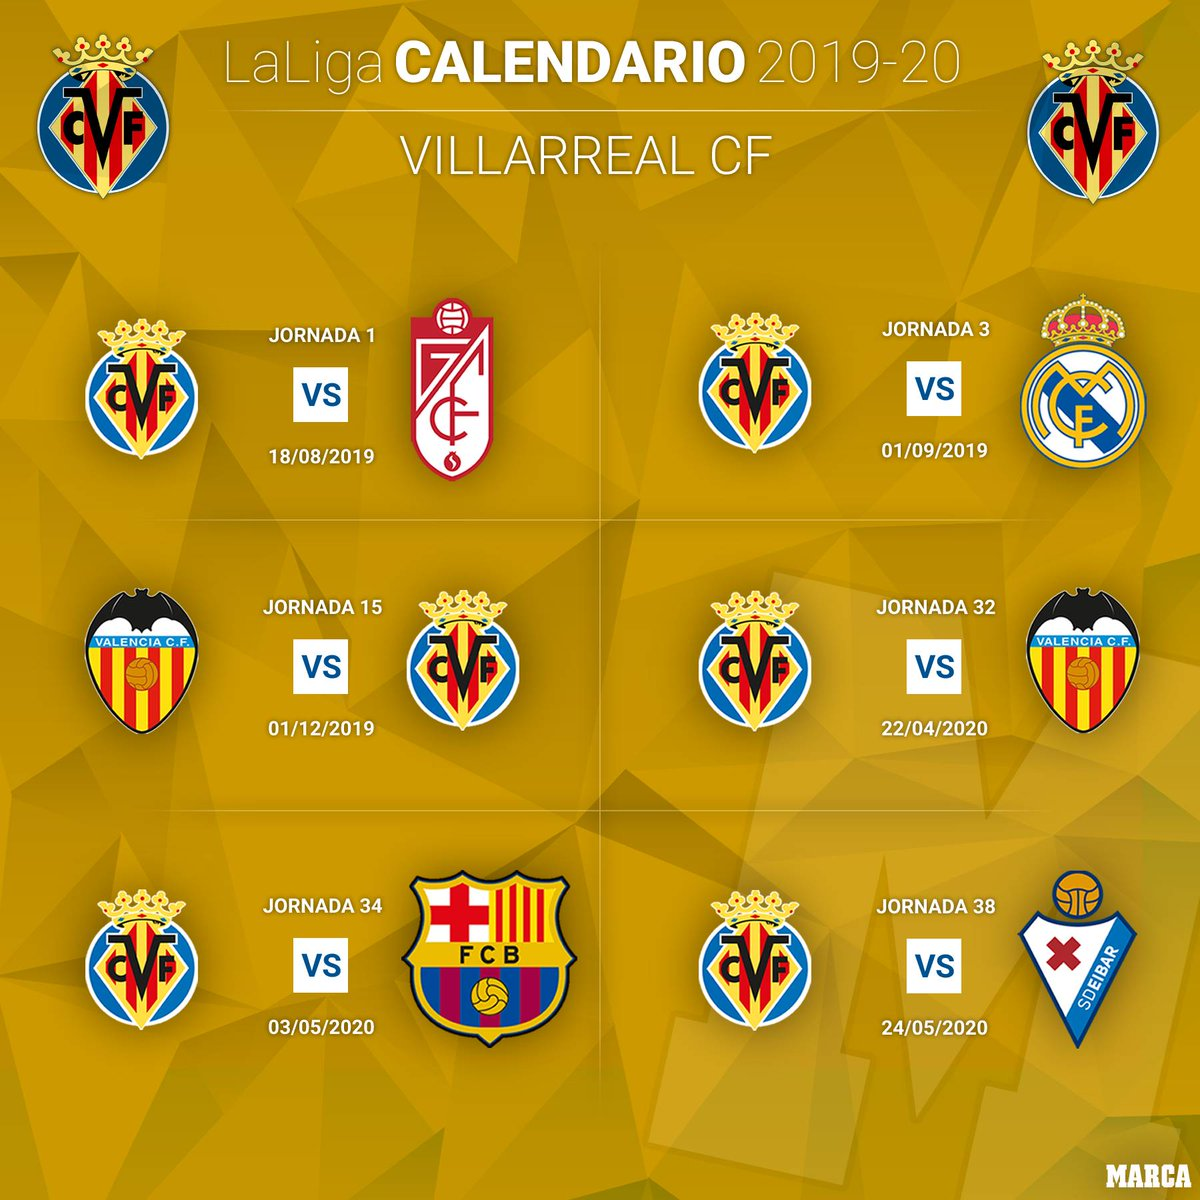 Calendario Del Villarreal.Marca On Twitter El Calendario Del Valladolid En 6